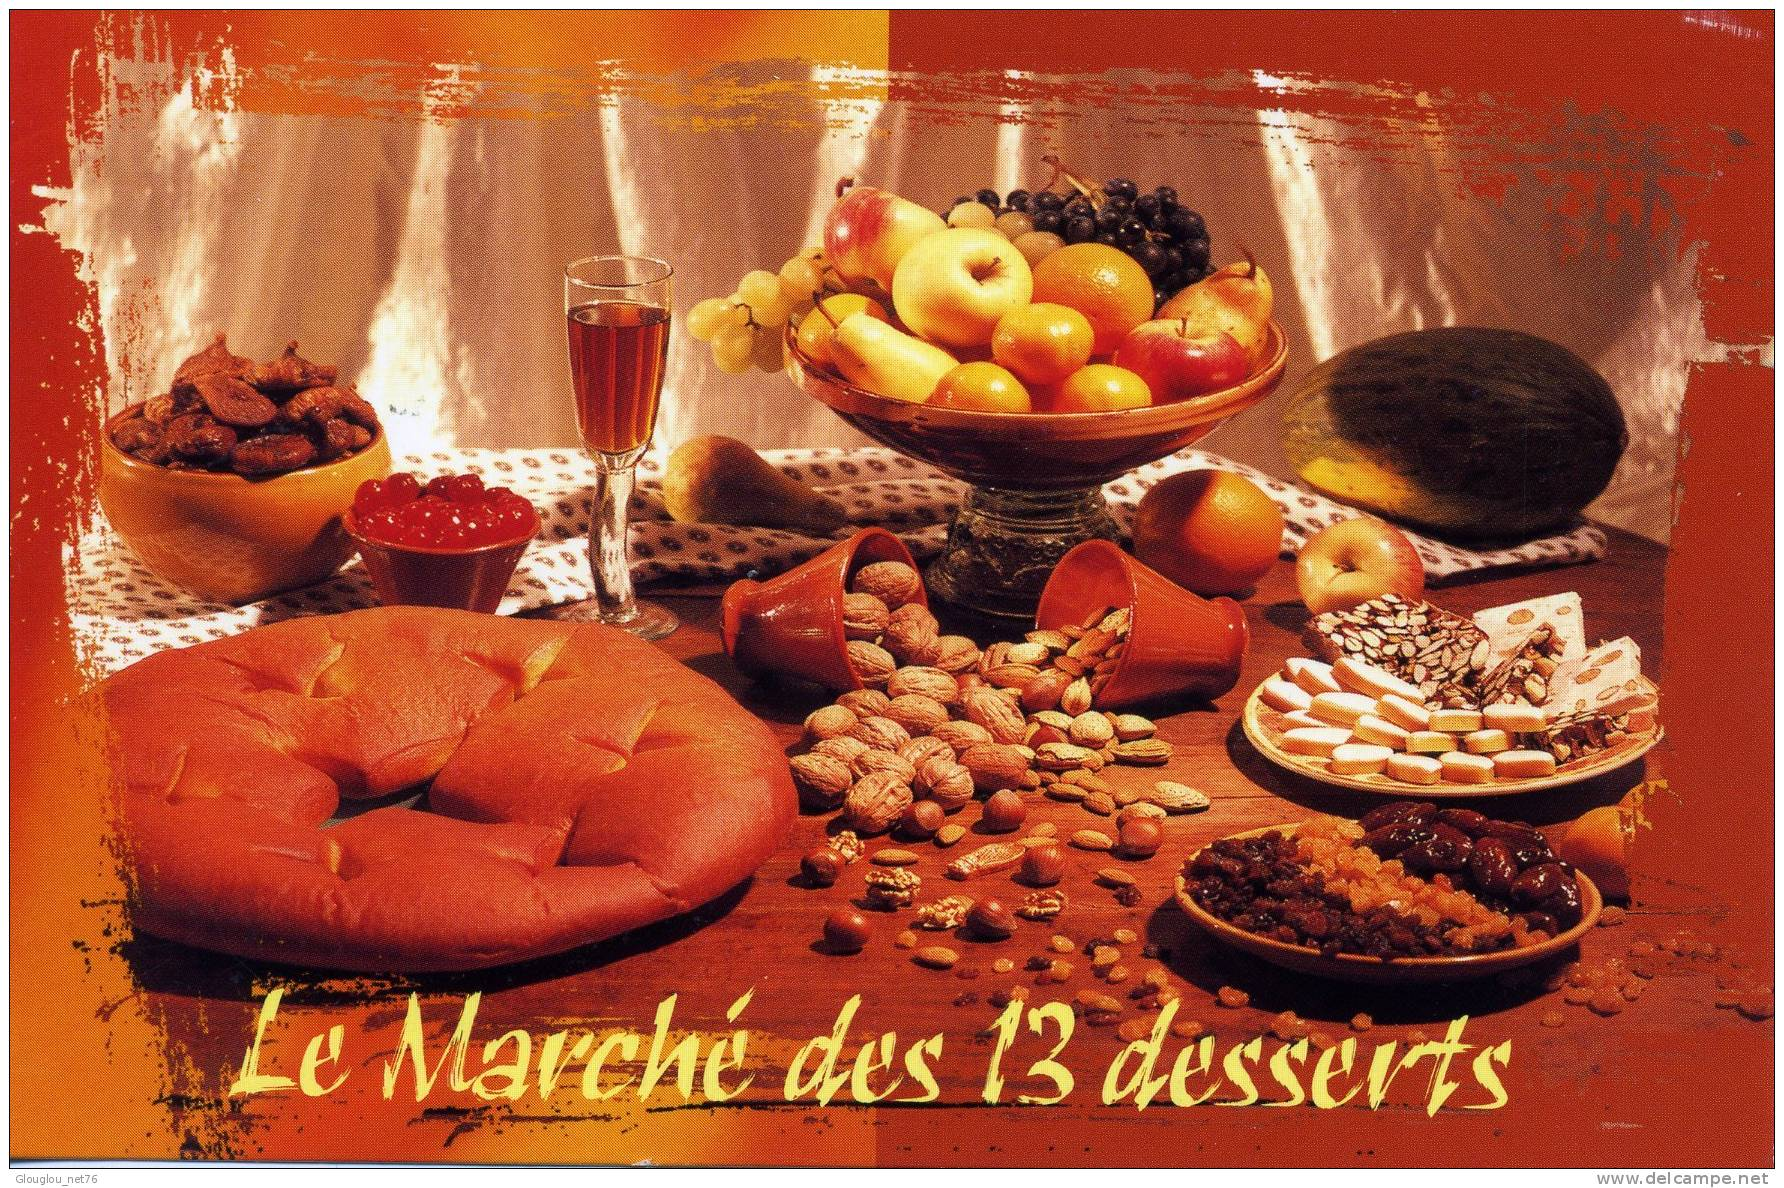 christmas in provence: vin cuit and the 13 desserts | elizabeth gabay mw